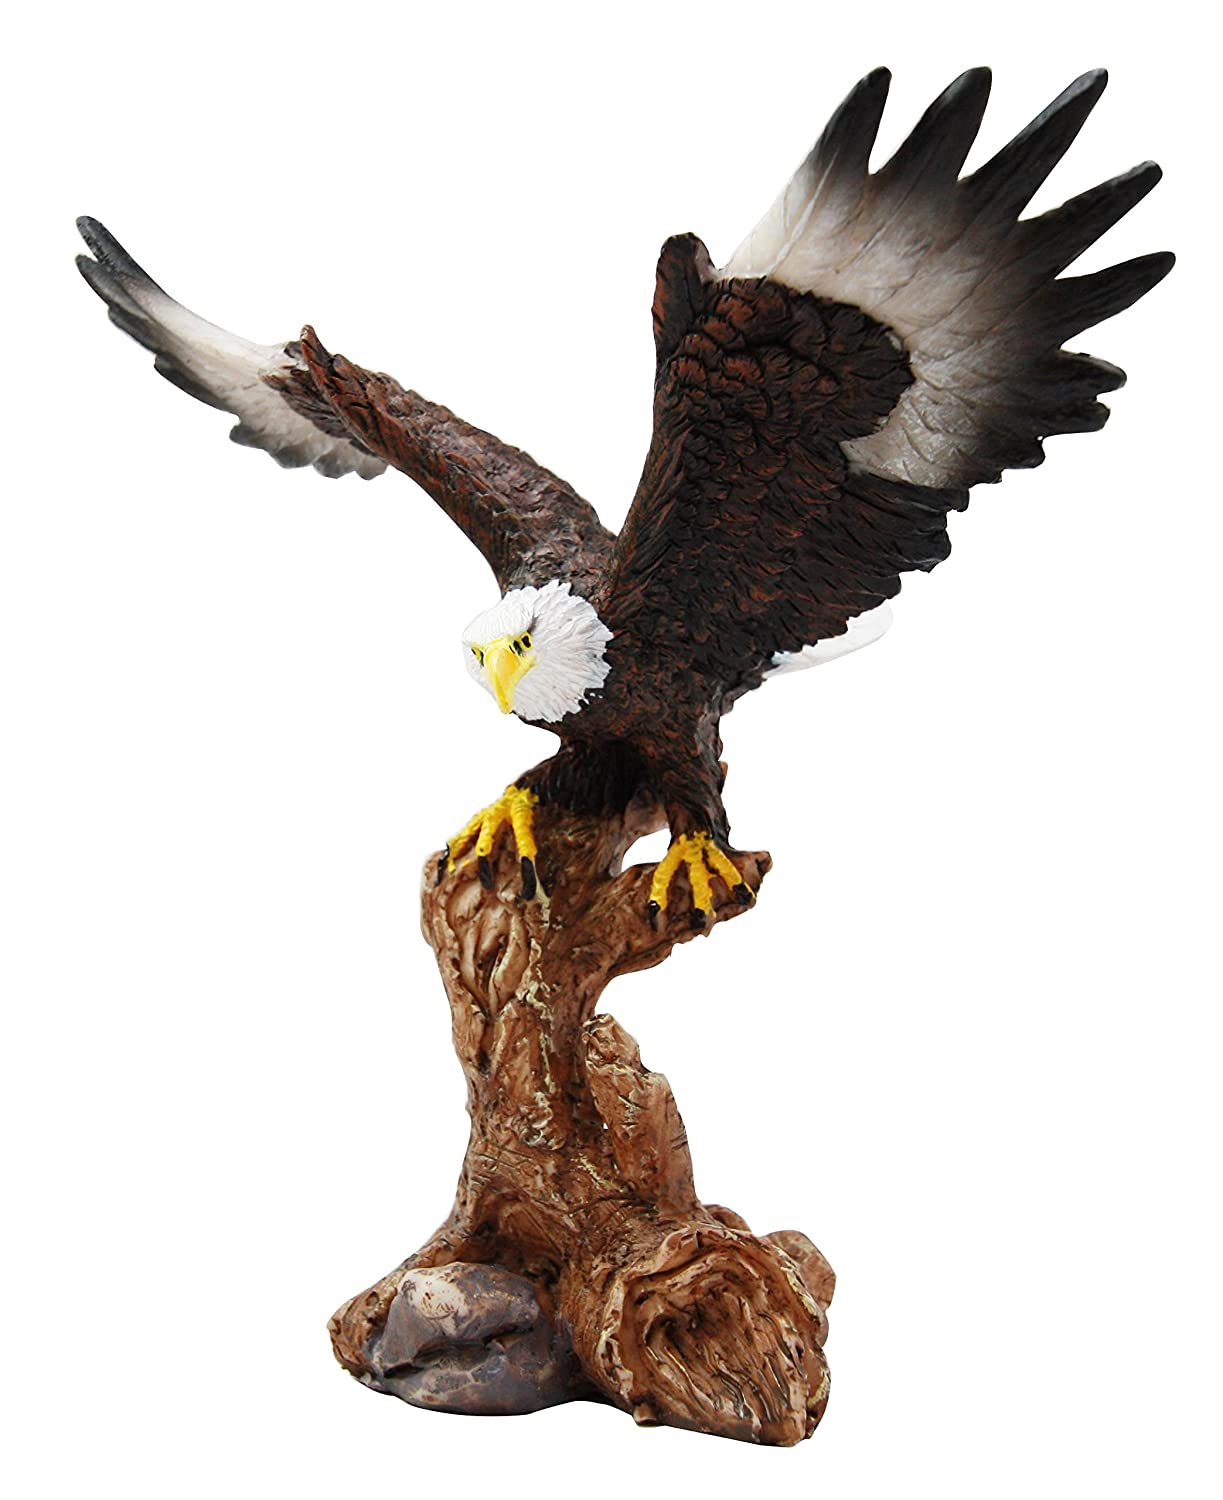 "Ebros 7"" Tall Bald Eagle Descending On Tree Branch Decorative Figurine As Patriotic Home And Office Decor Perching Eagles Wings Of Glory American Emblem Freedom Statues And Figurines"